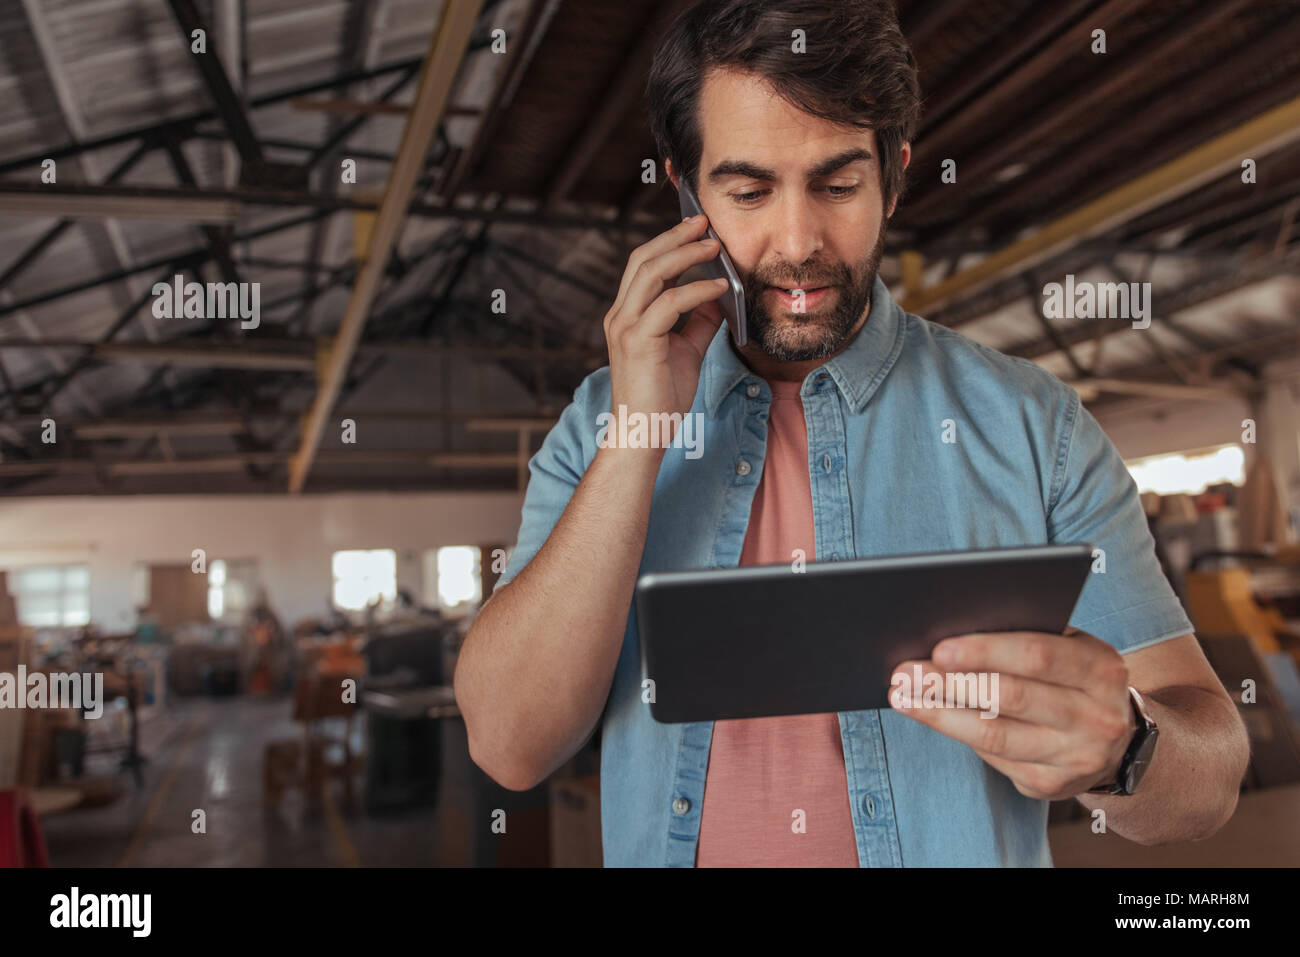 Busy entrepreneur using his tablet while talking on a cellphone - Stock Image